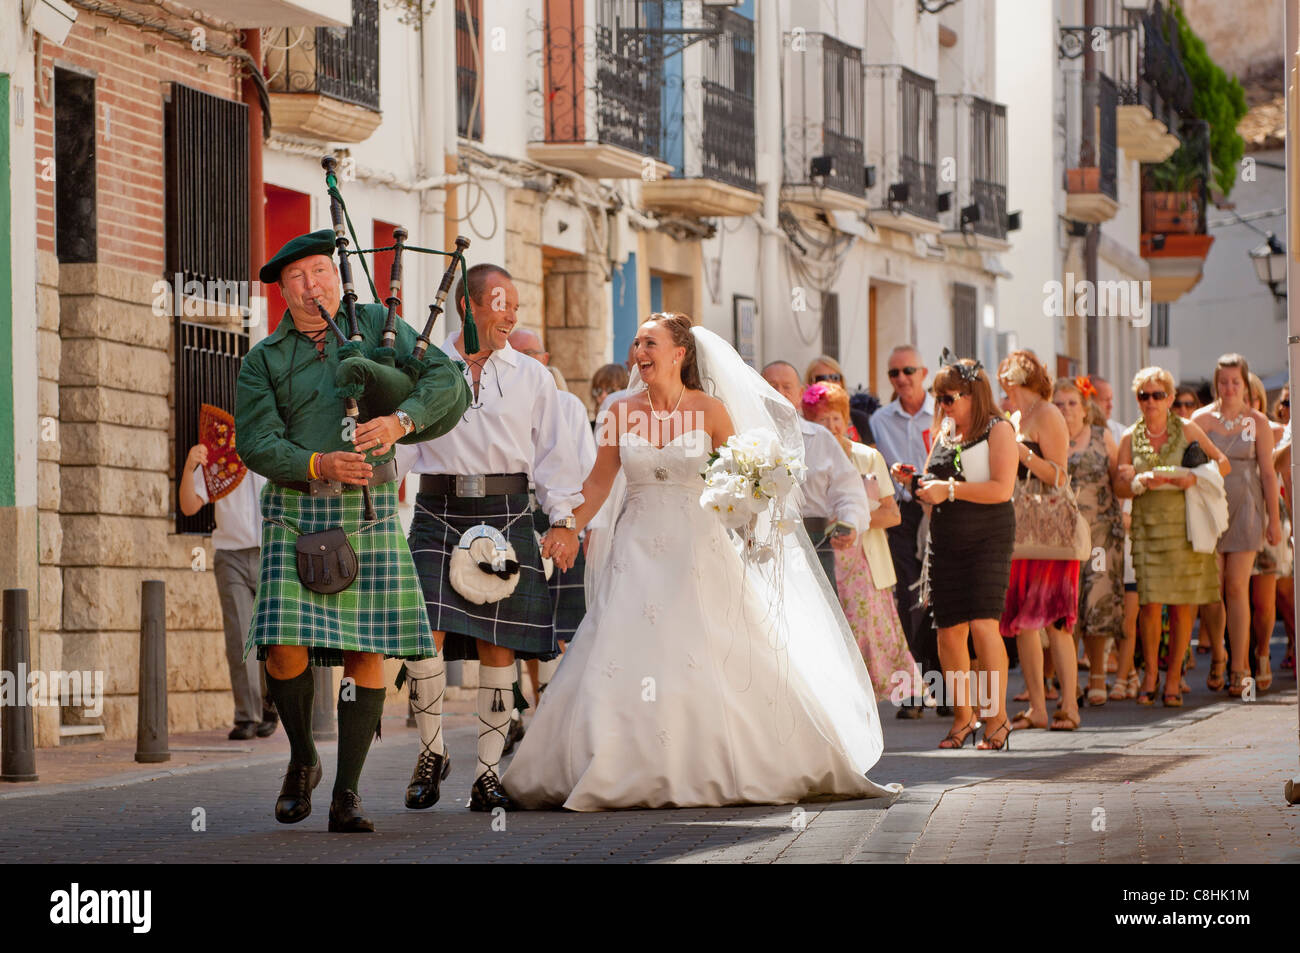 A scots wedding procession goes through the narrow streets of the a scots wedding procession goes through the narrow streets of the spnish village of la nucia in spain picture by brian hickey junglespirit Images